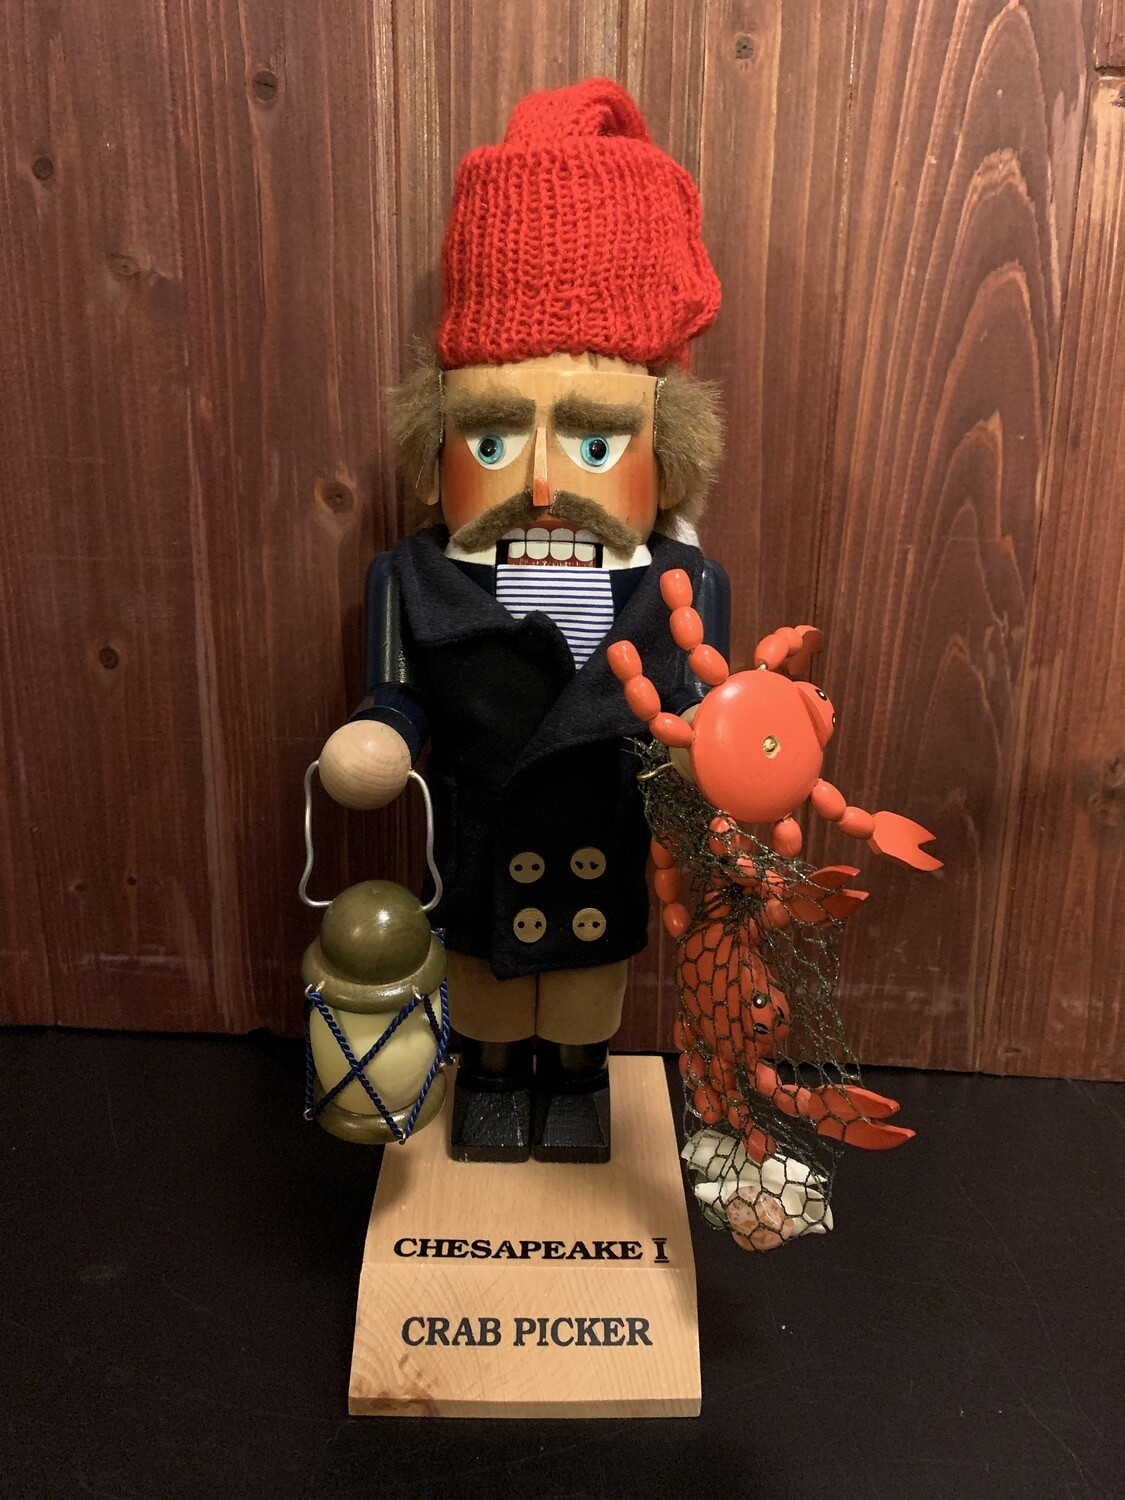 Chesapeake Crab Picker Nutcracker